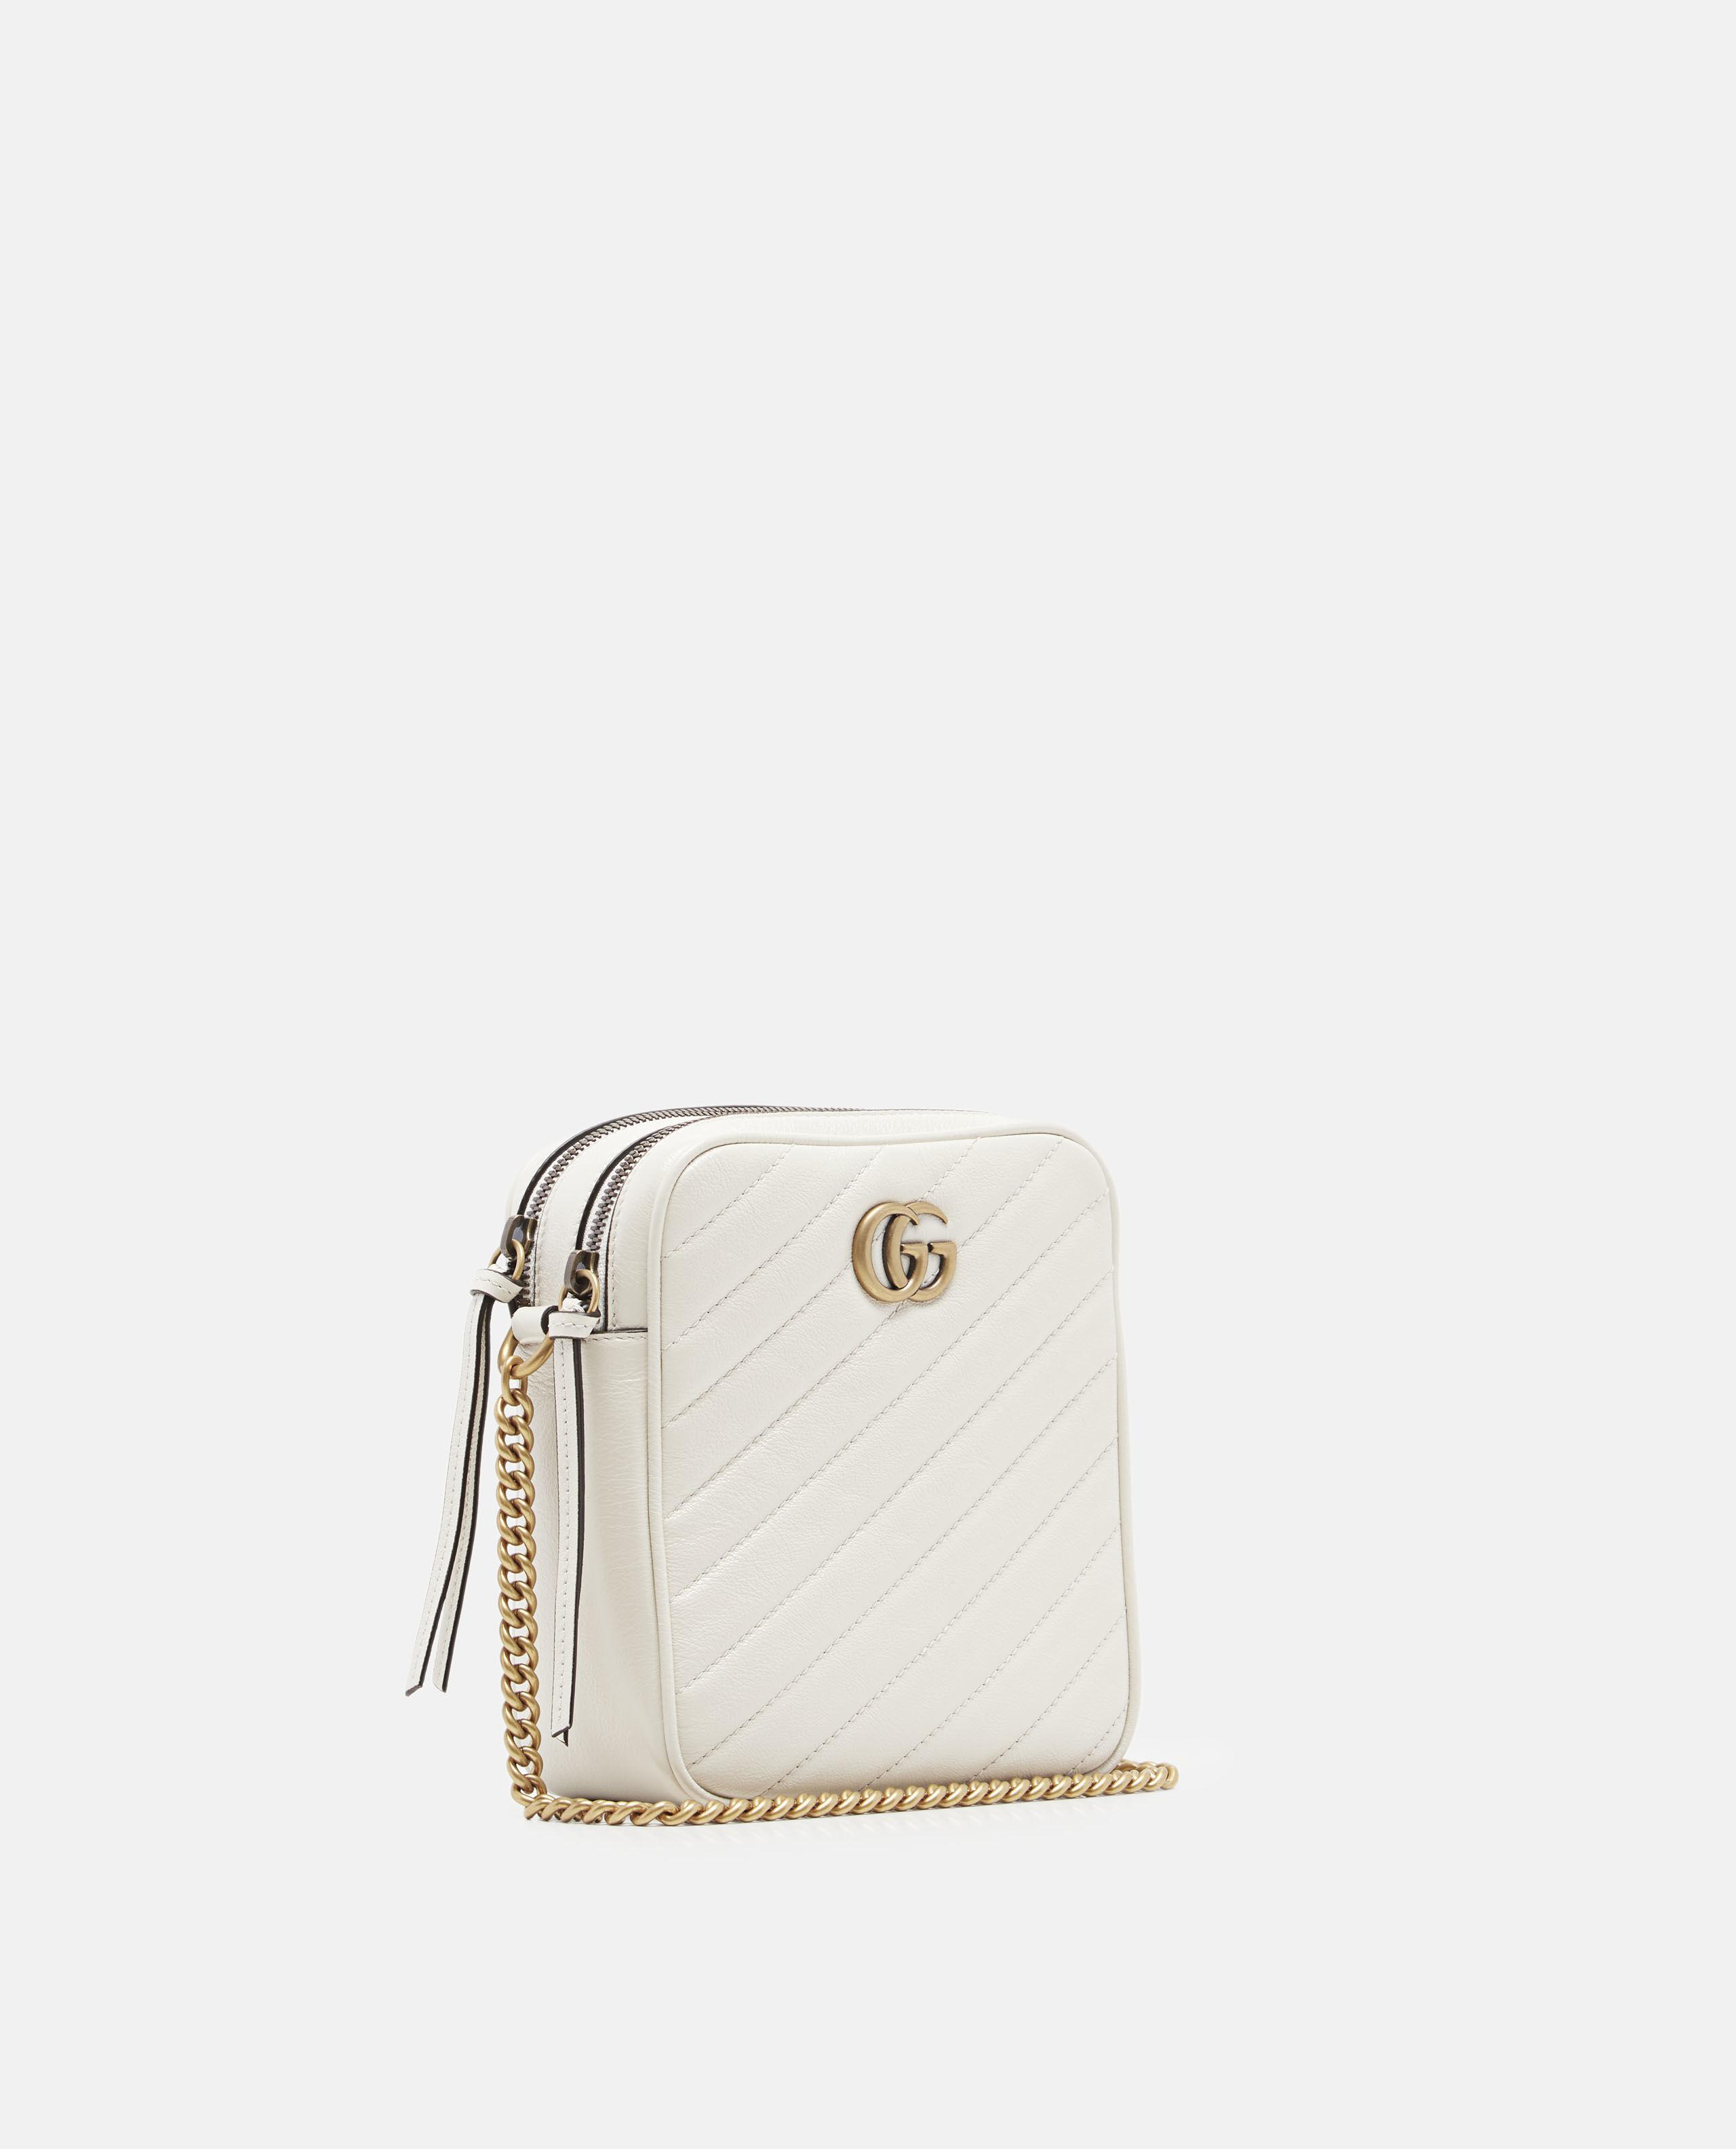 Lyst - Gucci GG Marmont Mini Shoulder Bag in Natural 18e9c3ebb995a